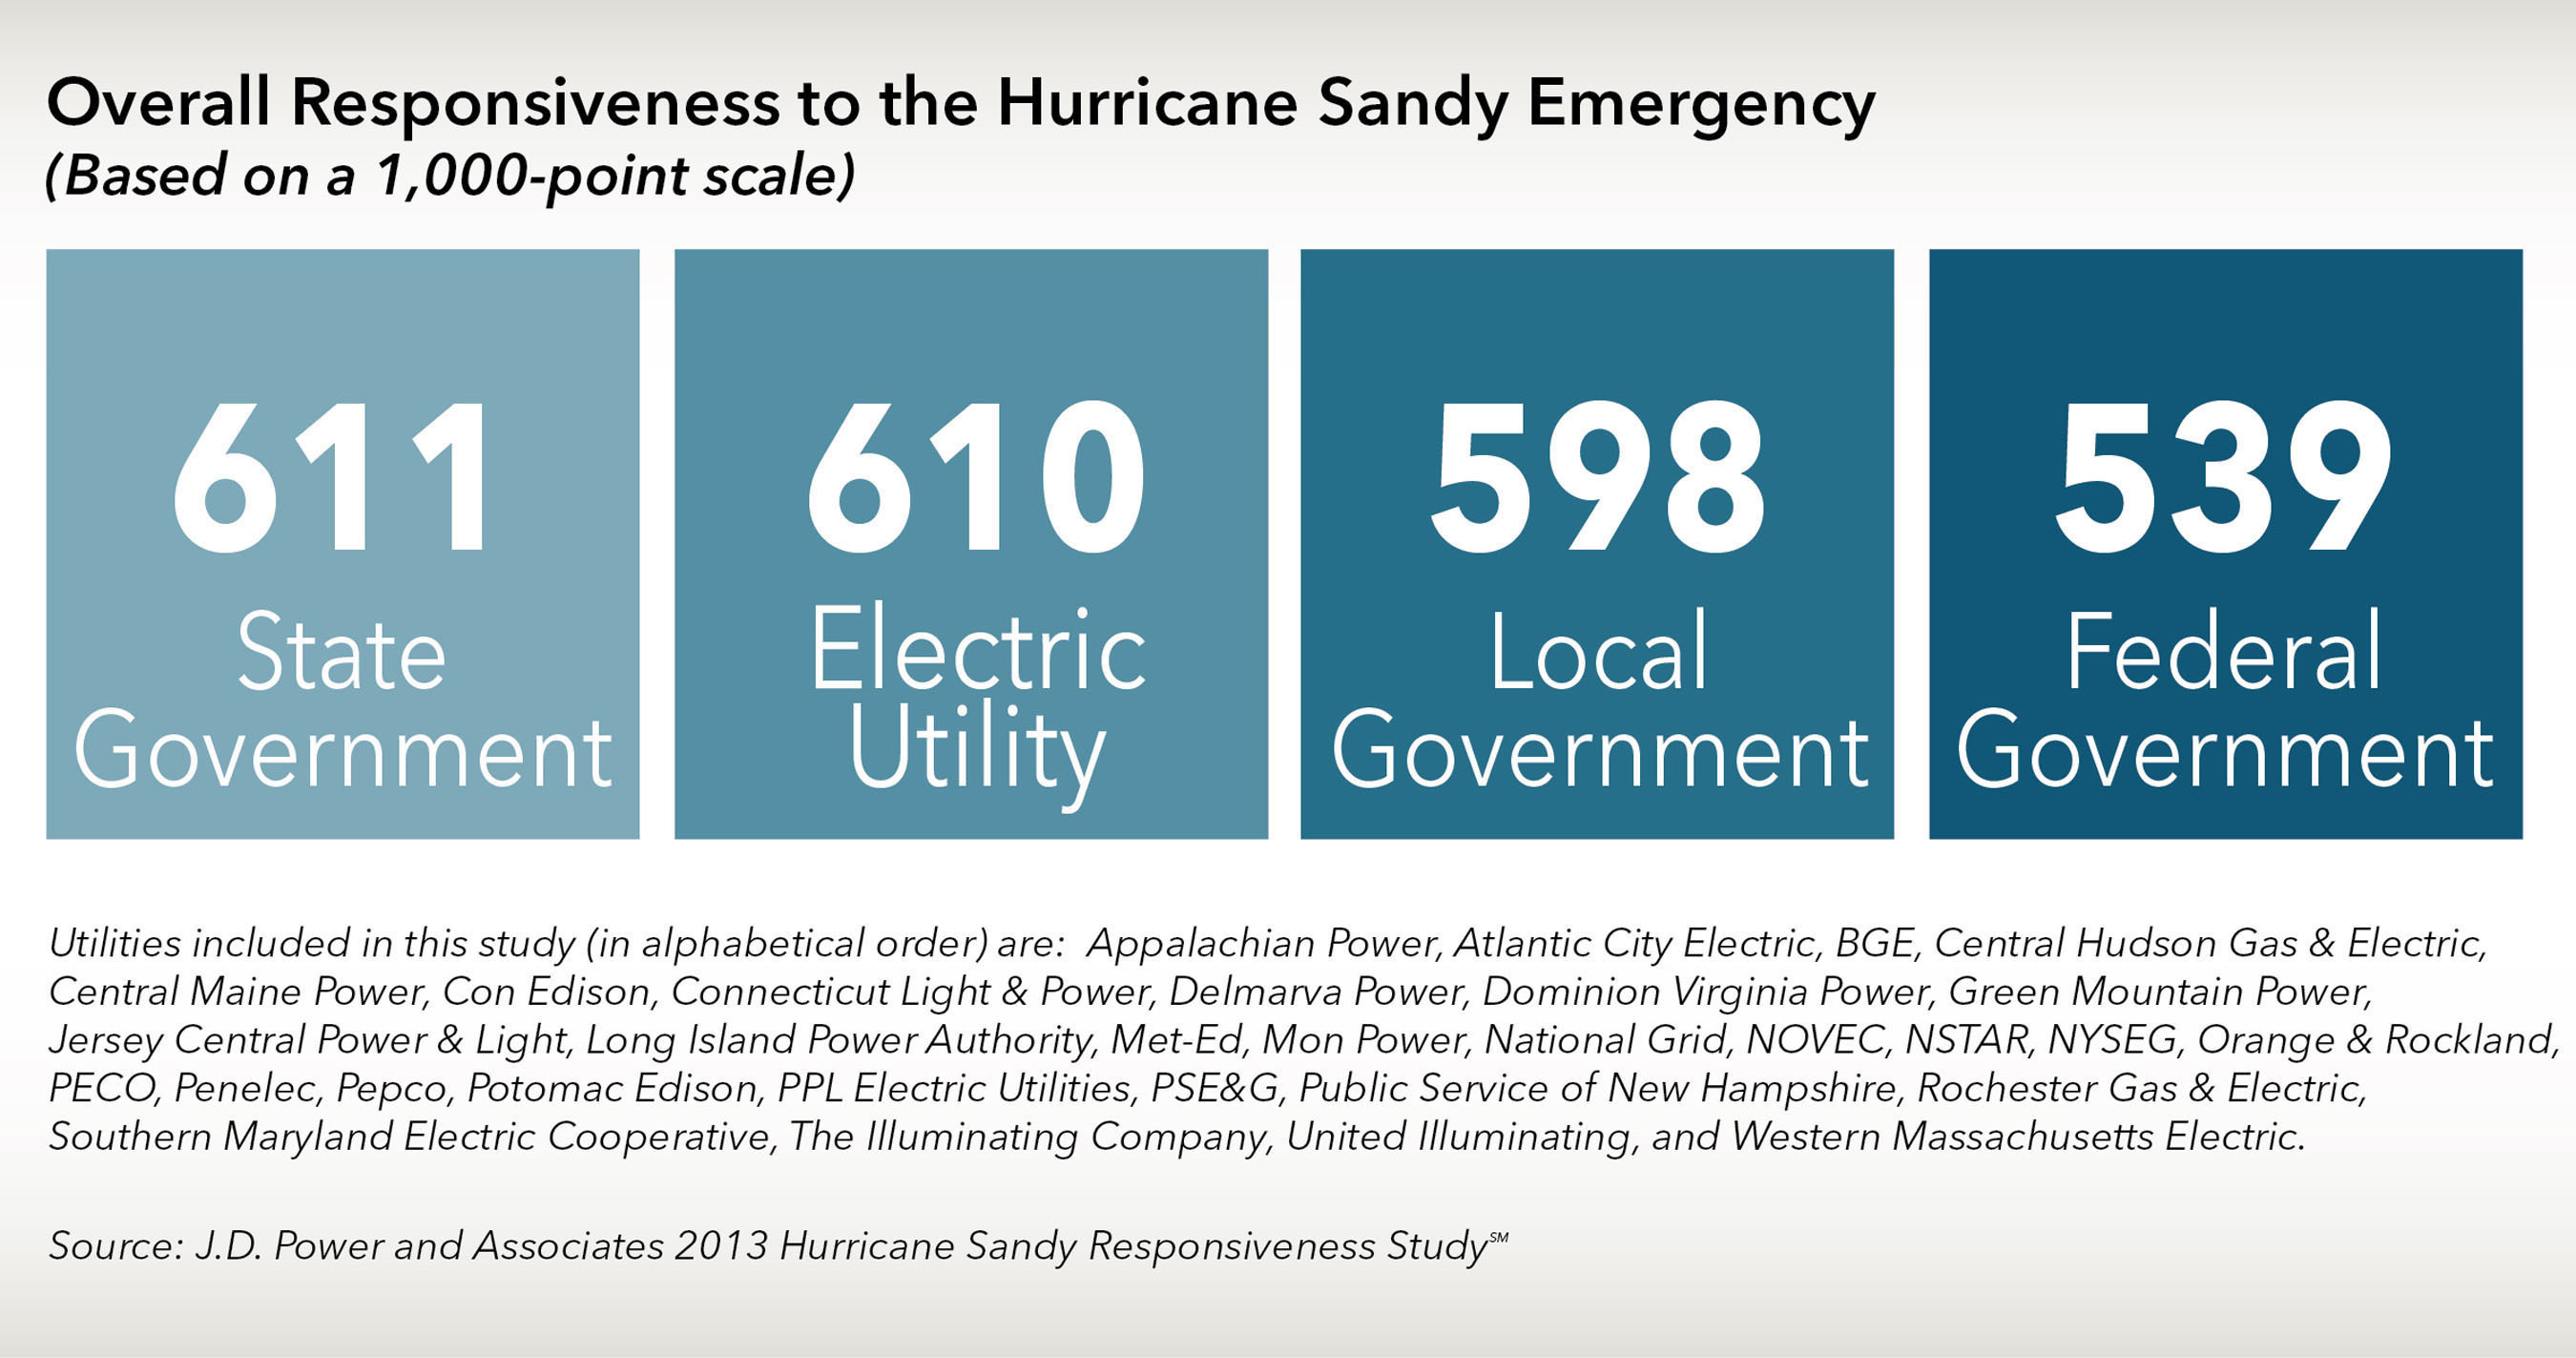 Overall Responsiveness to the Hurricane Sandy Emergency. (PRNewsFoto/J.D. Power and Associates) ...